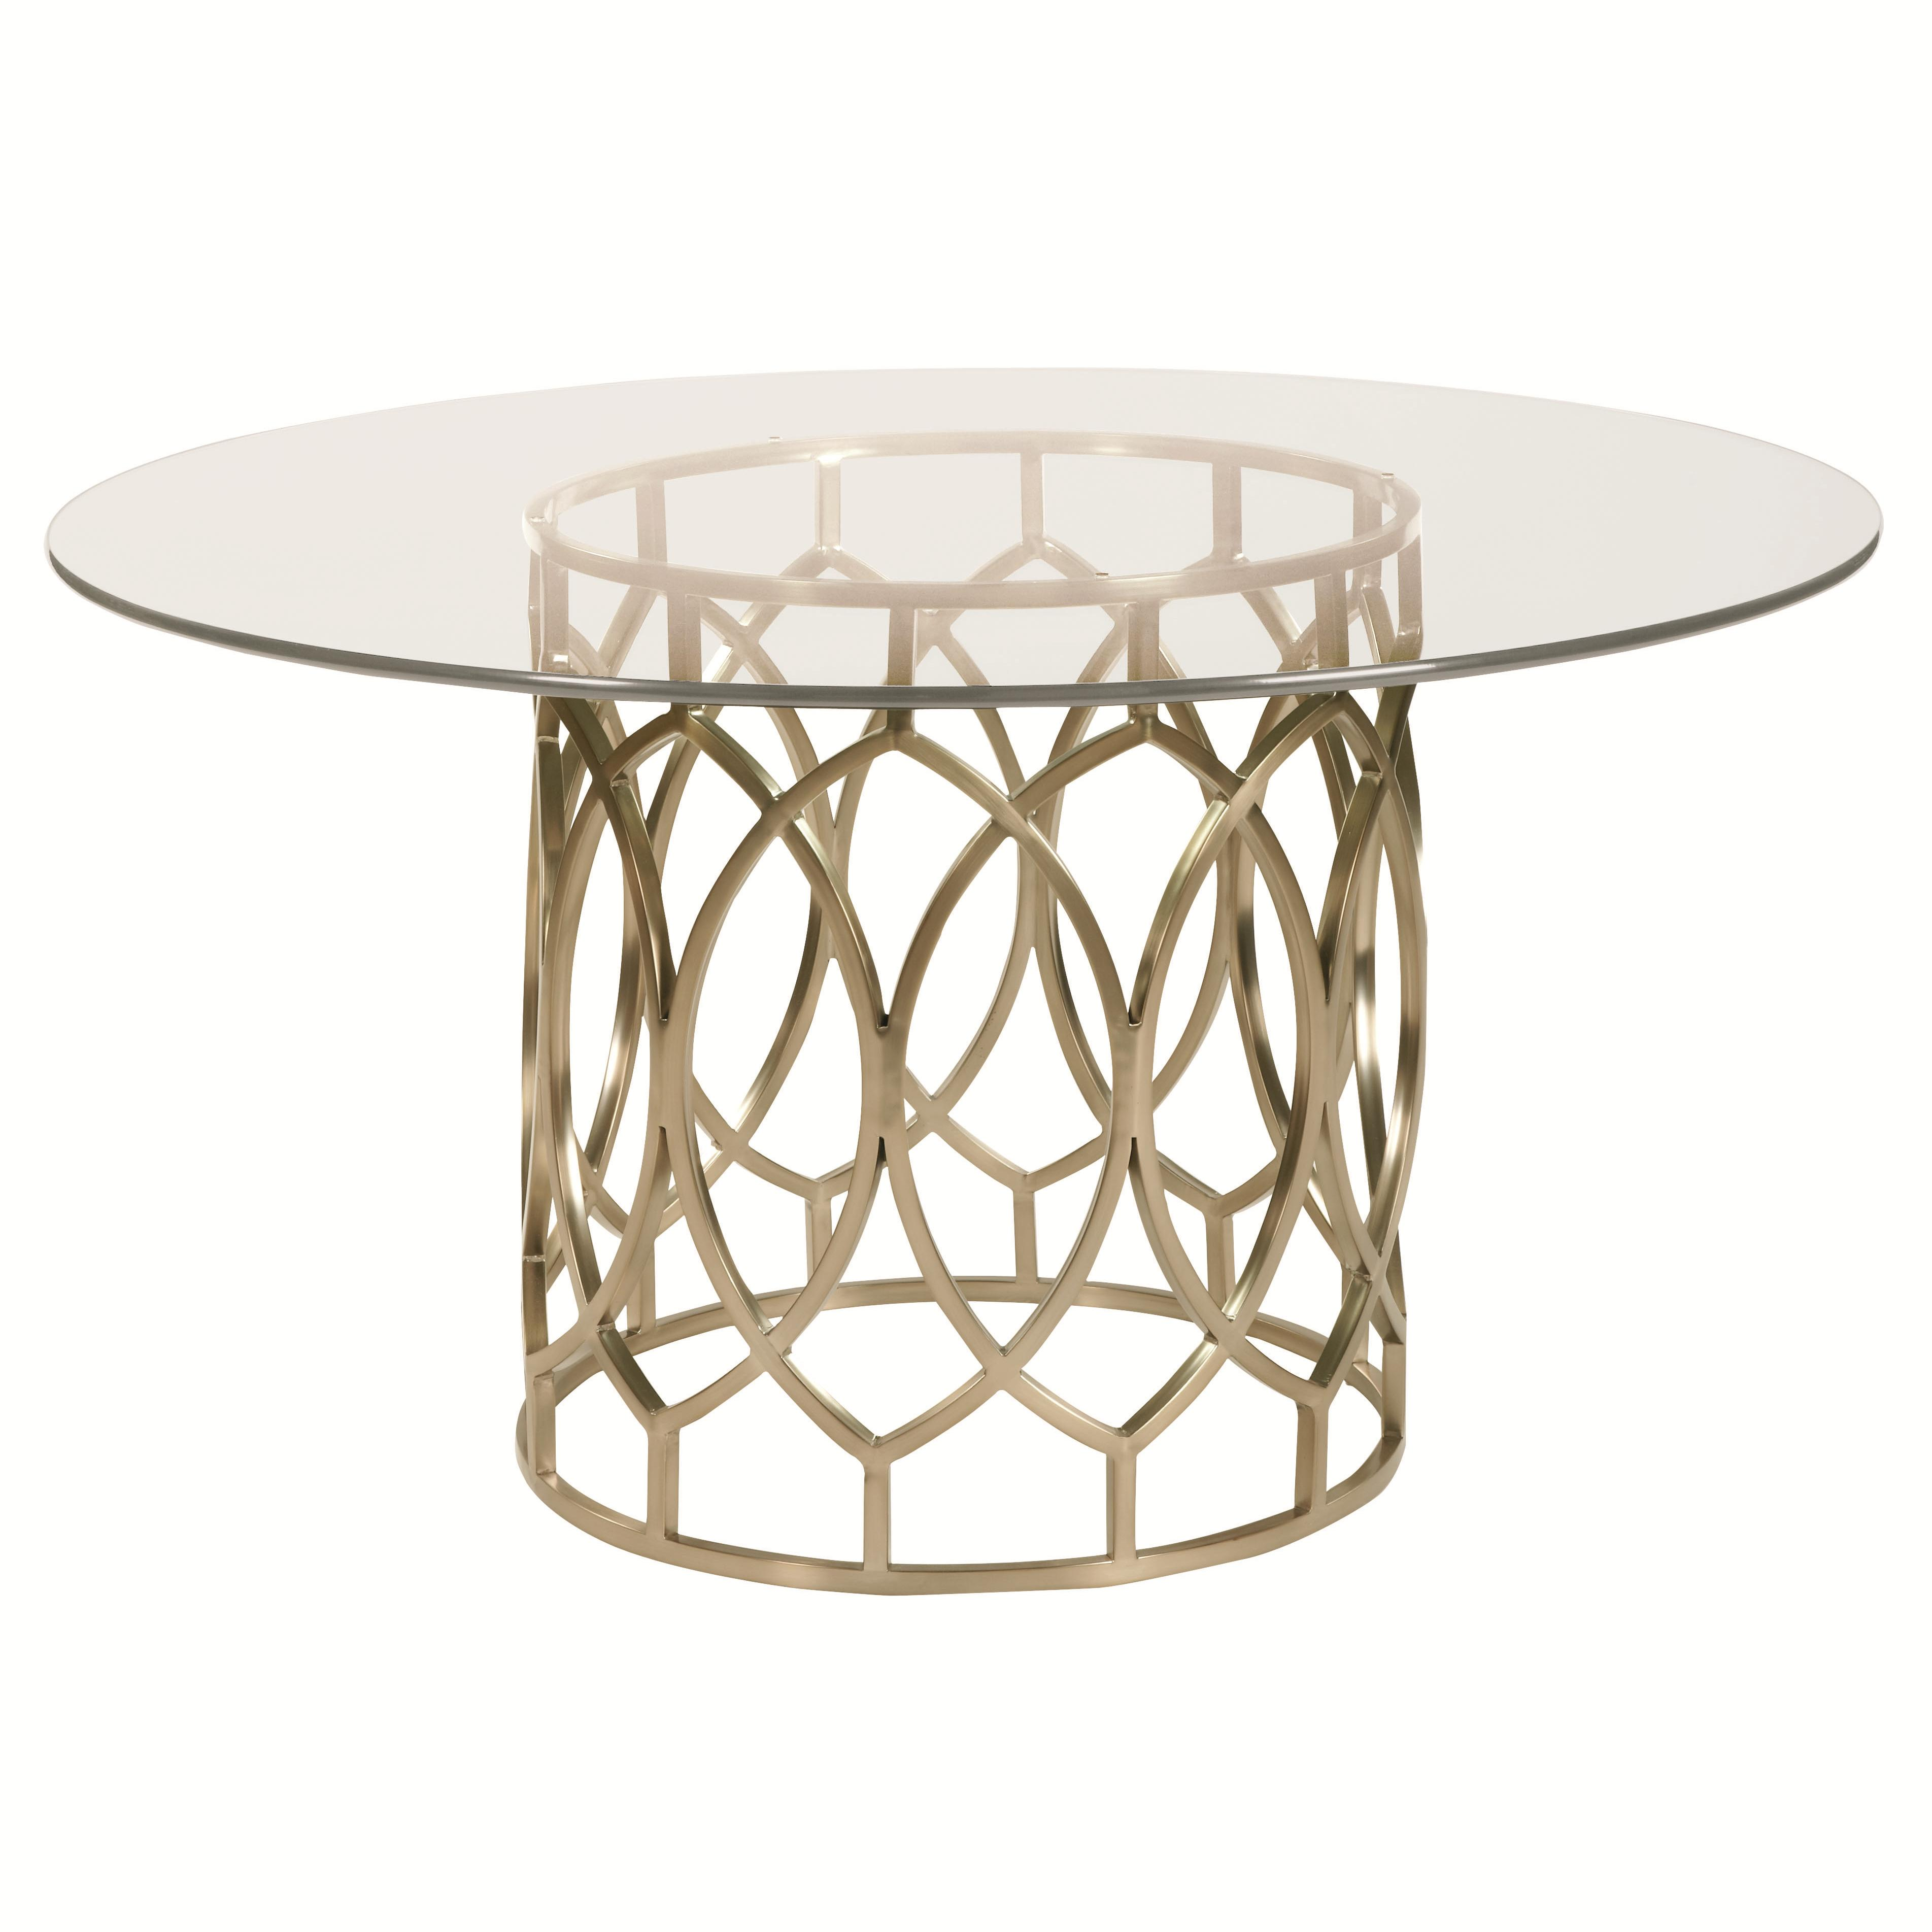 Bernhardt Salon Dining Table with Glass Top - Item Number: 341-773+G